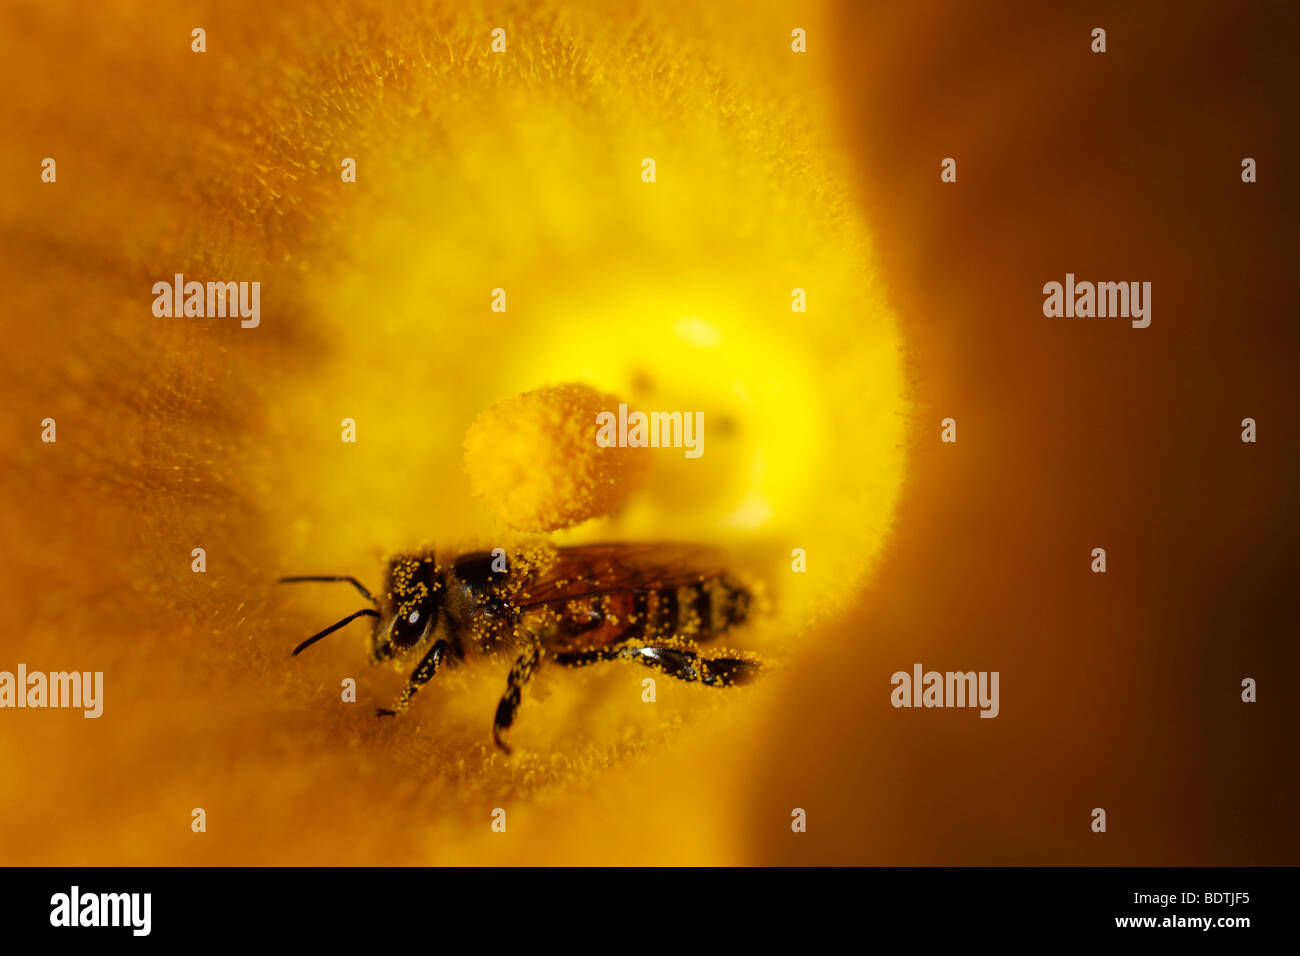 Close-up of a busy honeybee, with clearly visible pollen, inside a bright yellow flower collecting nectar. - Stock Image